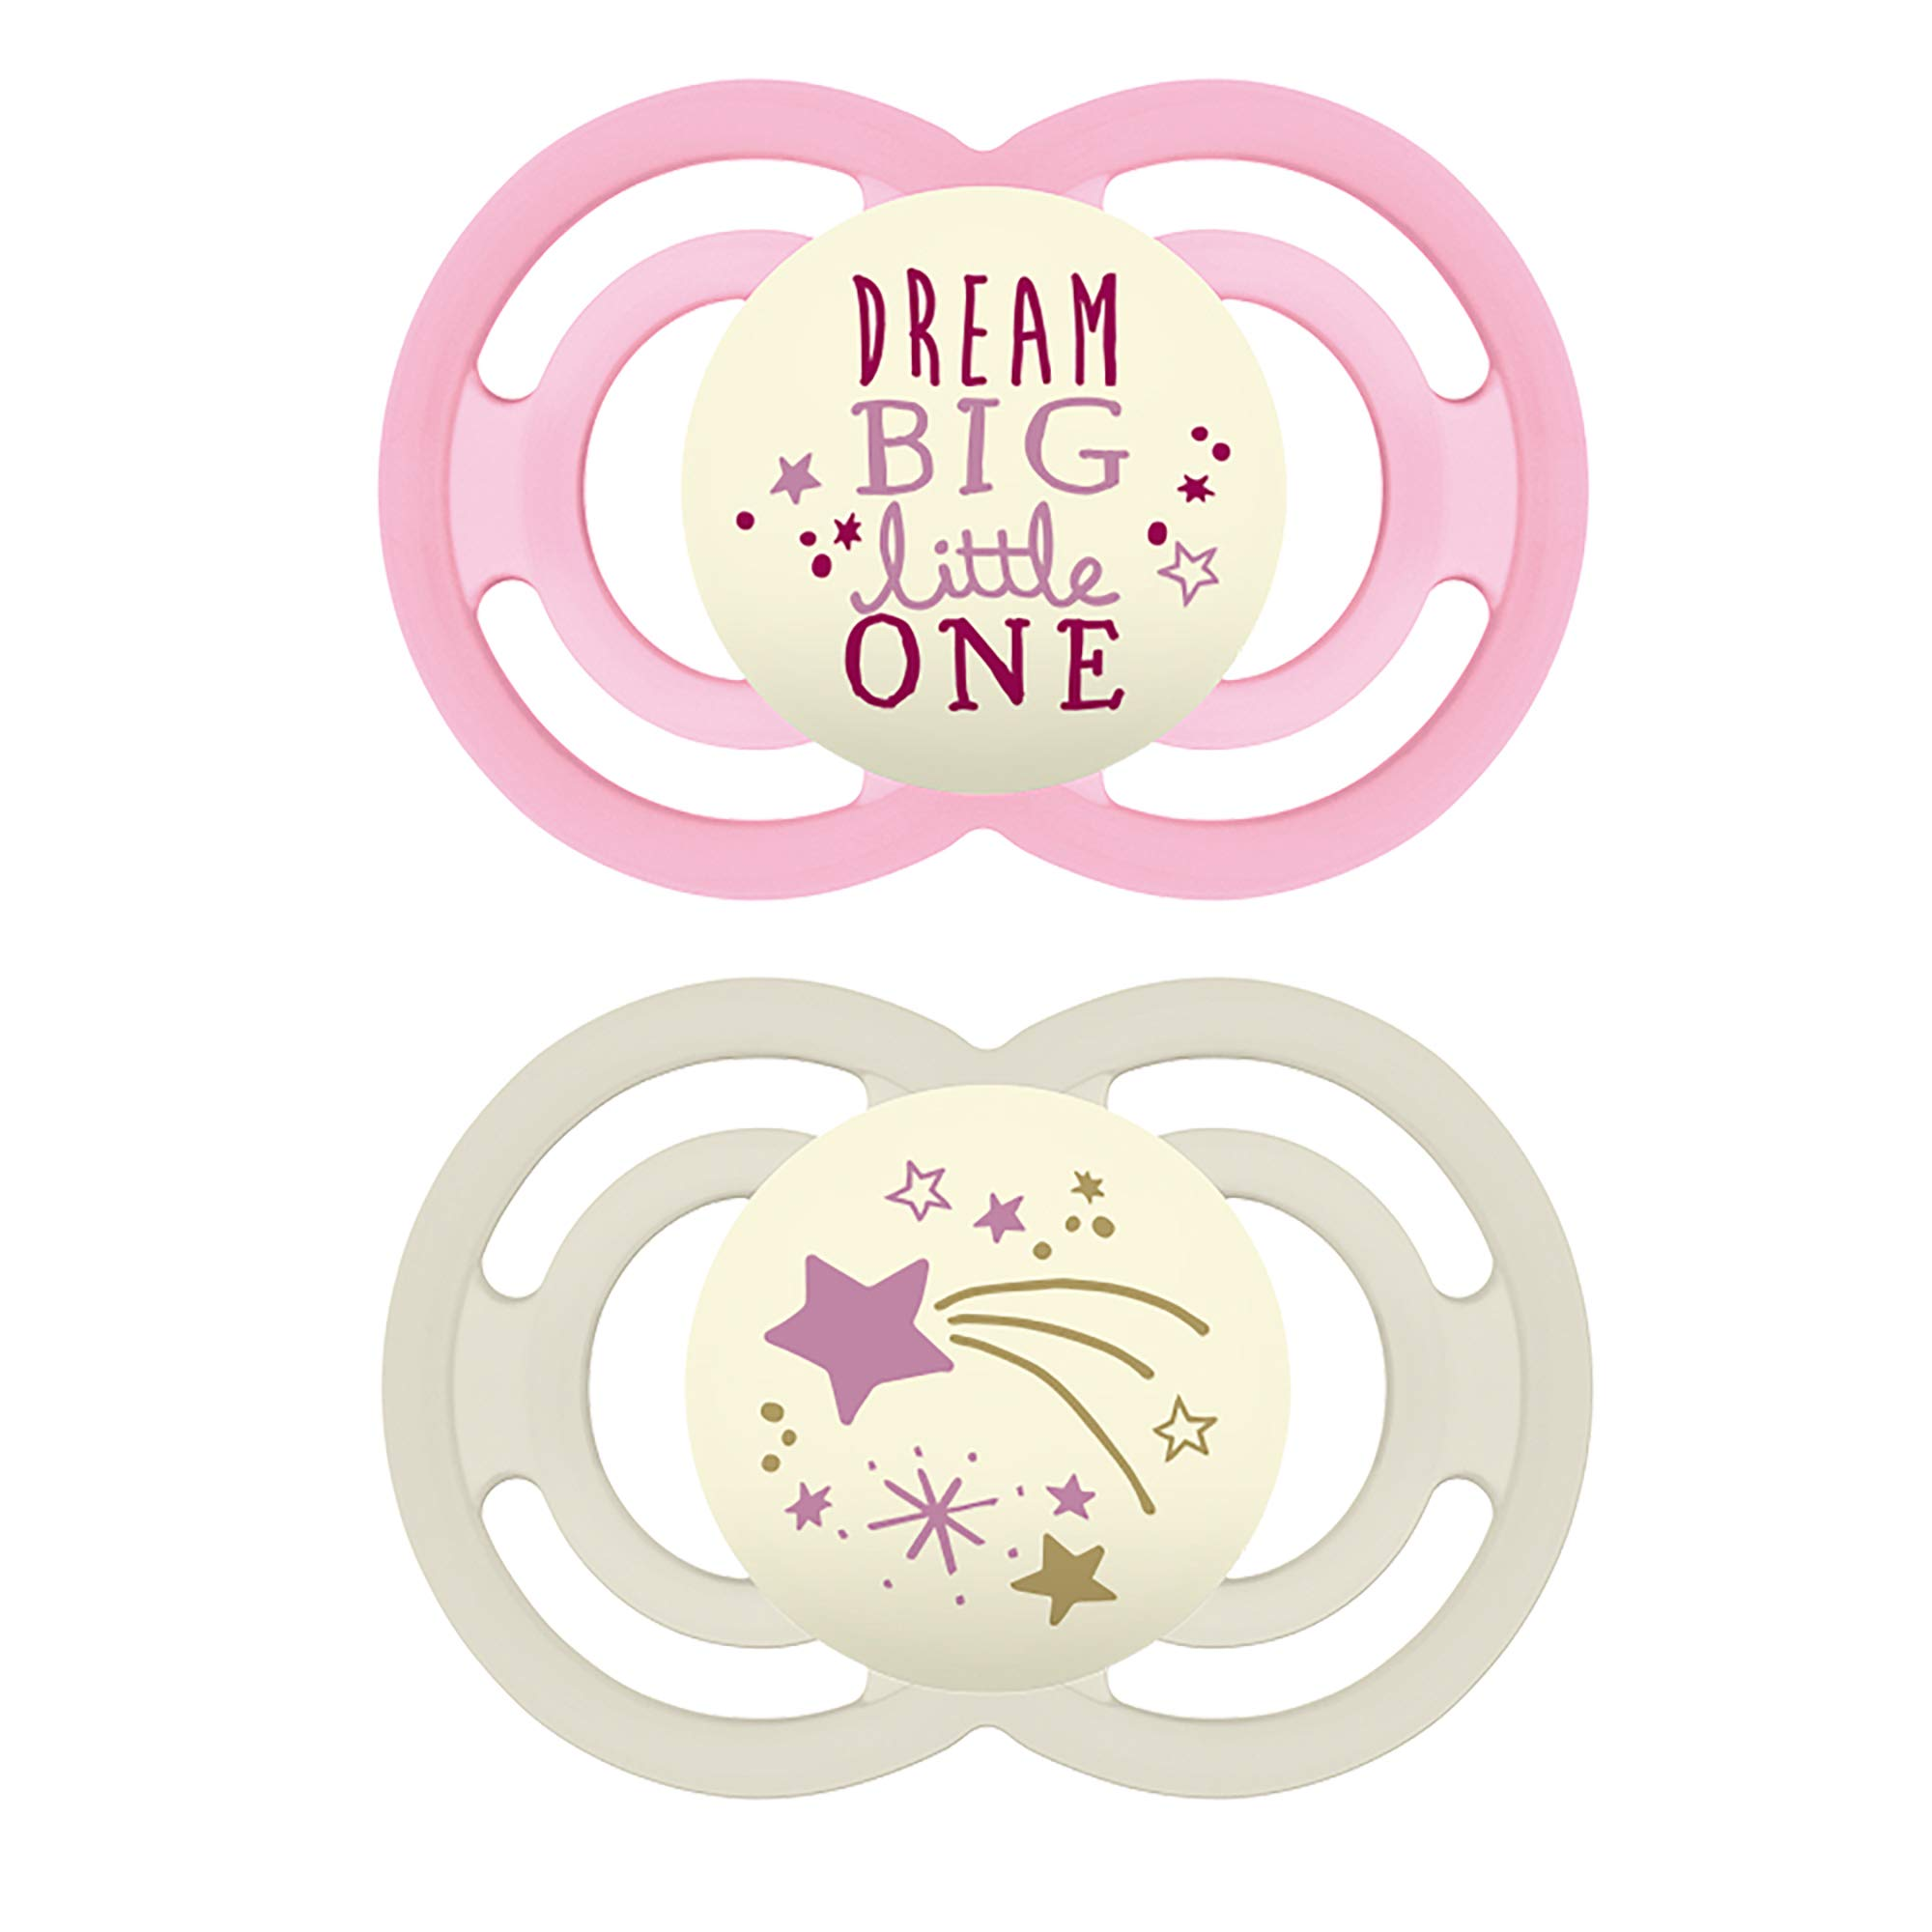 MAM Perfect Night Pacifiers, Glow in the Dark Pacifiers (2 pack) MAM Pacifiers 6 Plus Months, Best Pacifier for Breastfed Babies, Baby Girl Pacifier, Designs May Vary